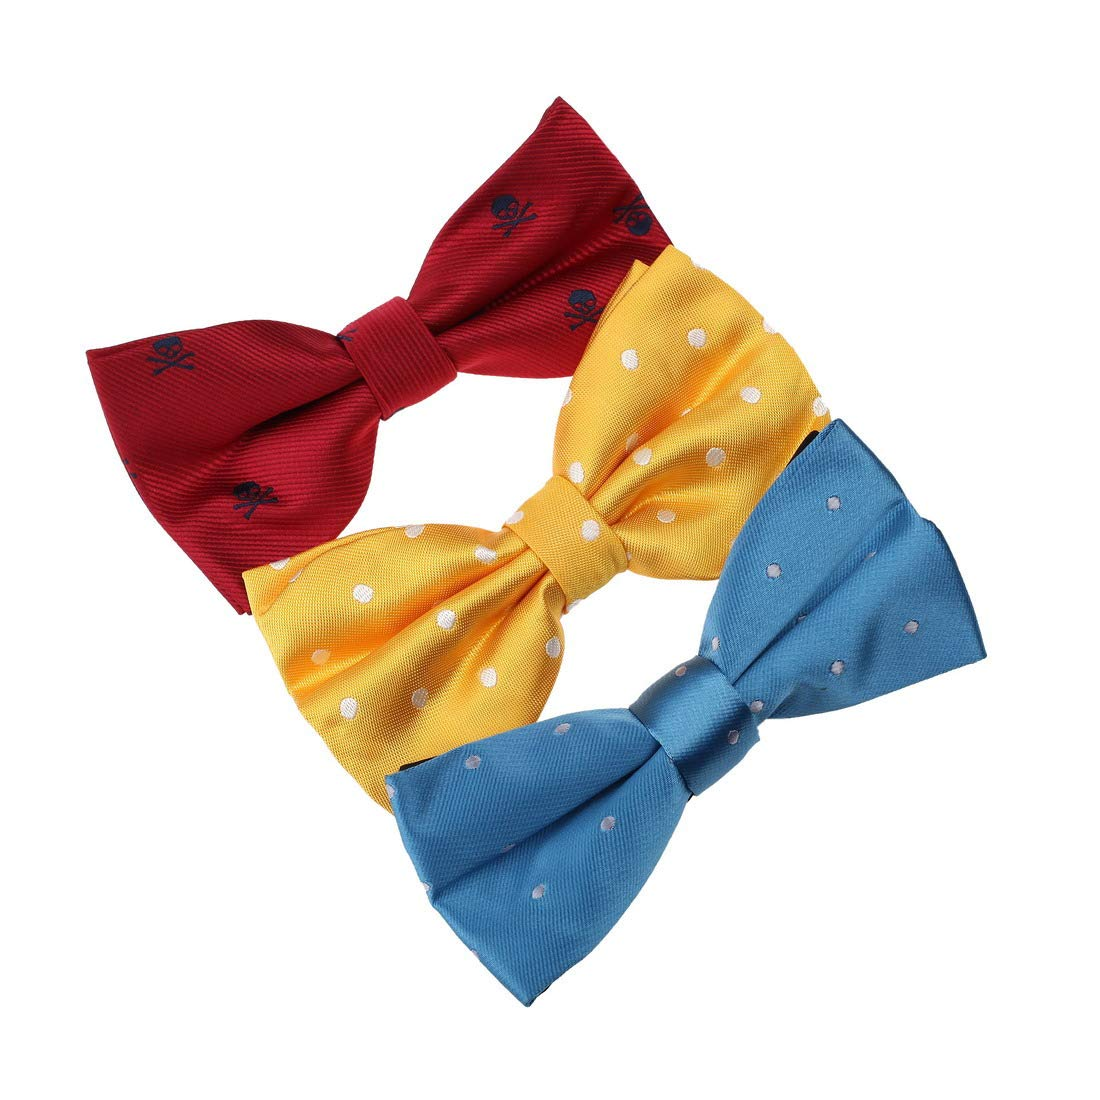 DBE0146 Perfect Fashion Microfiber Bow ties Presents For Gentlemen 3 Pack Bow Tie Set By Dan Smith